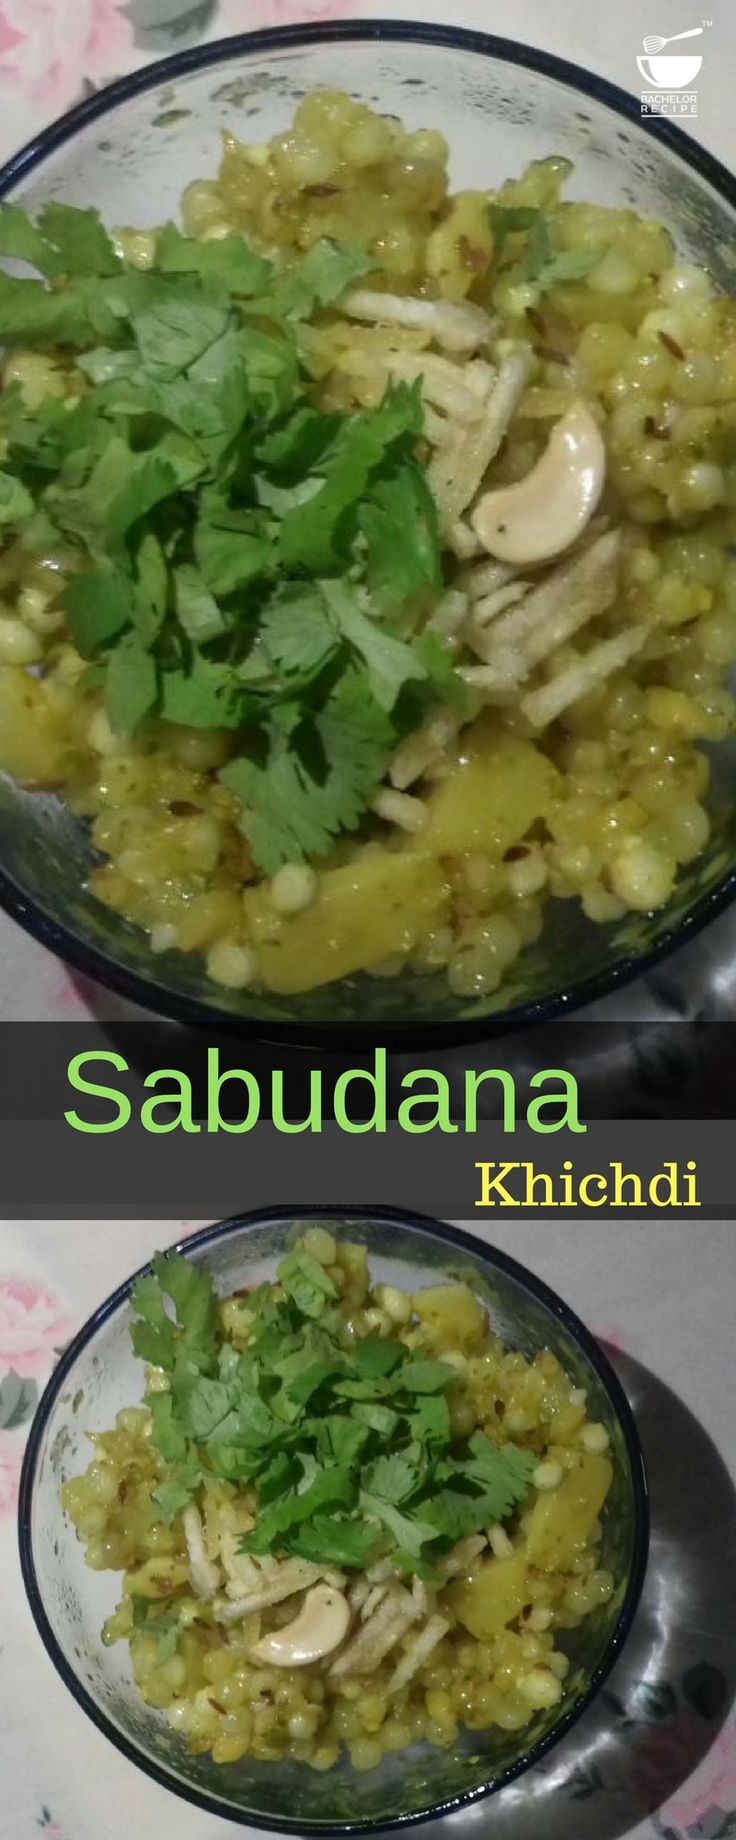 Absolutely delicious #khichdi made mostly during #fast, upvas, and vrat. Recipe with video and step by step images. - Bachelor Recipe. #easy #sabudana #recipeofteday